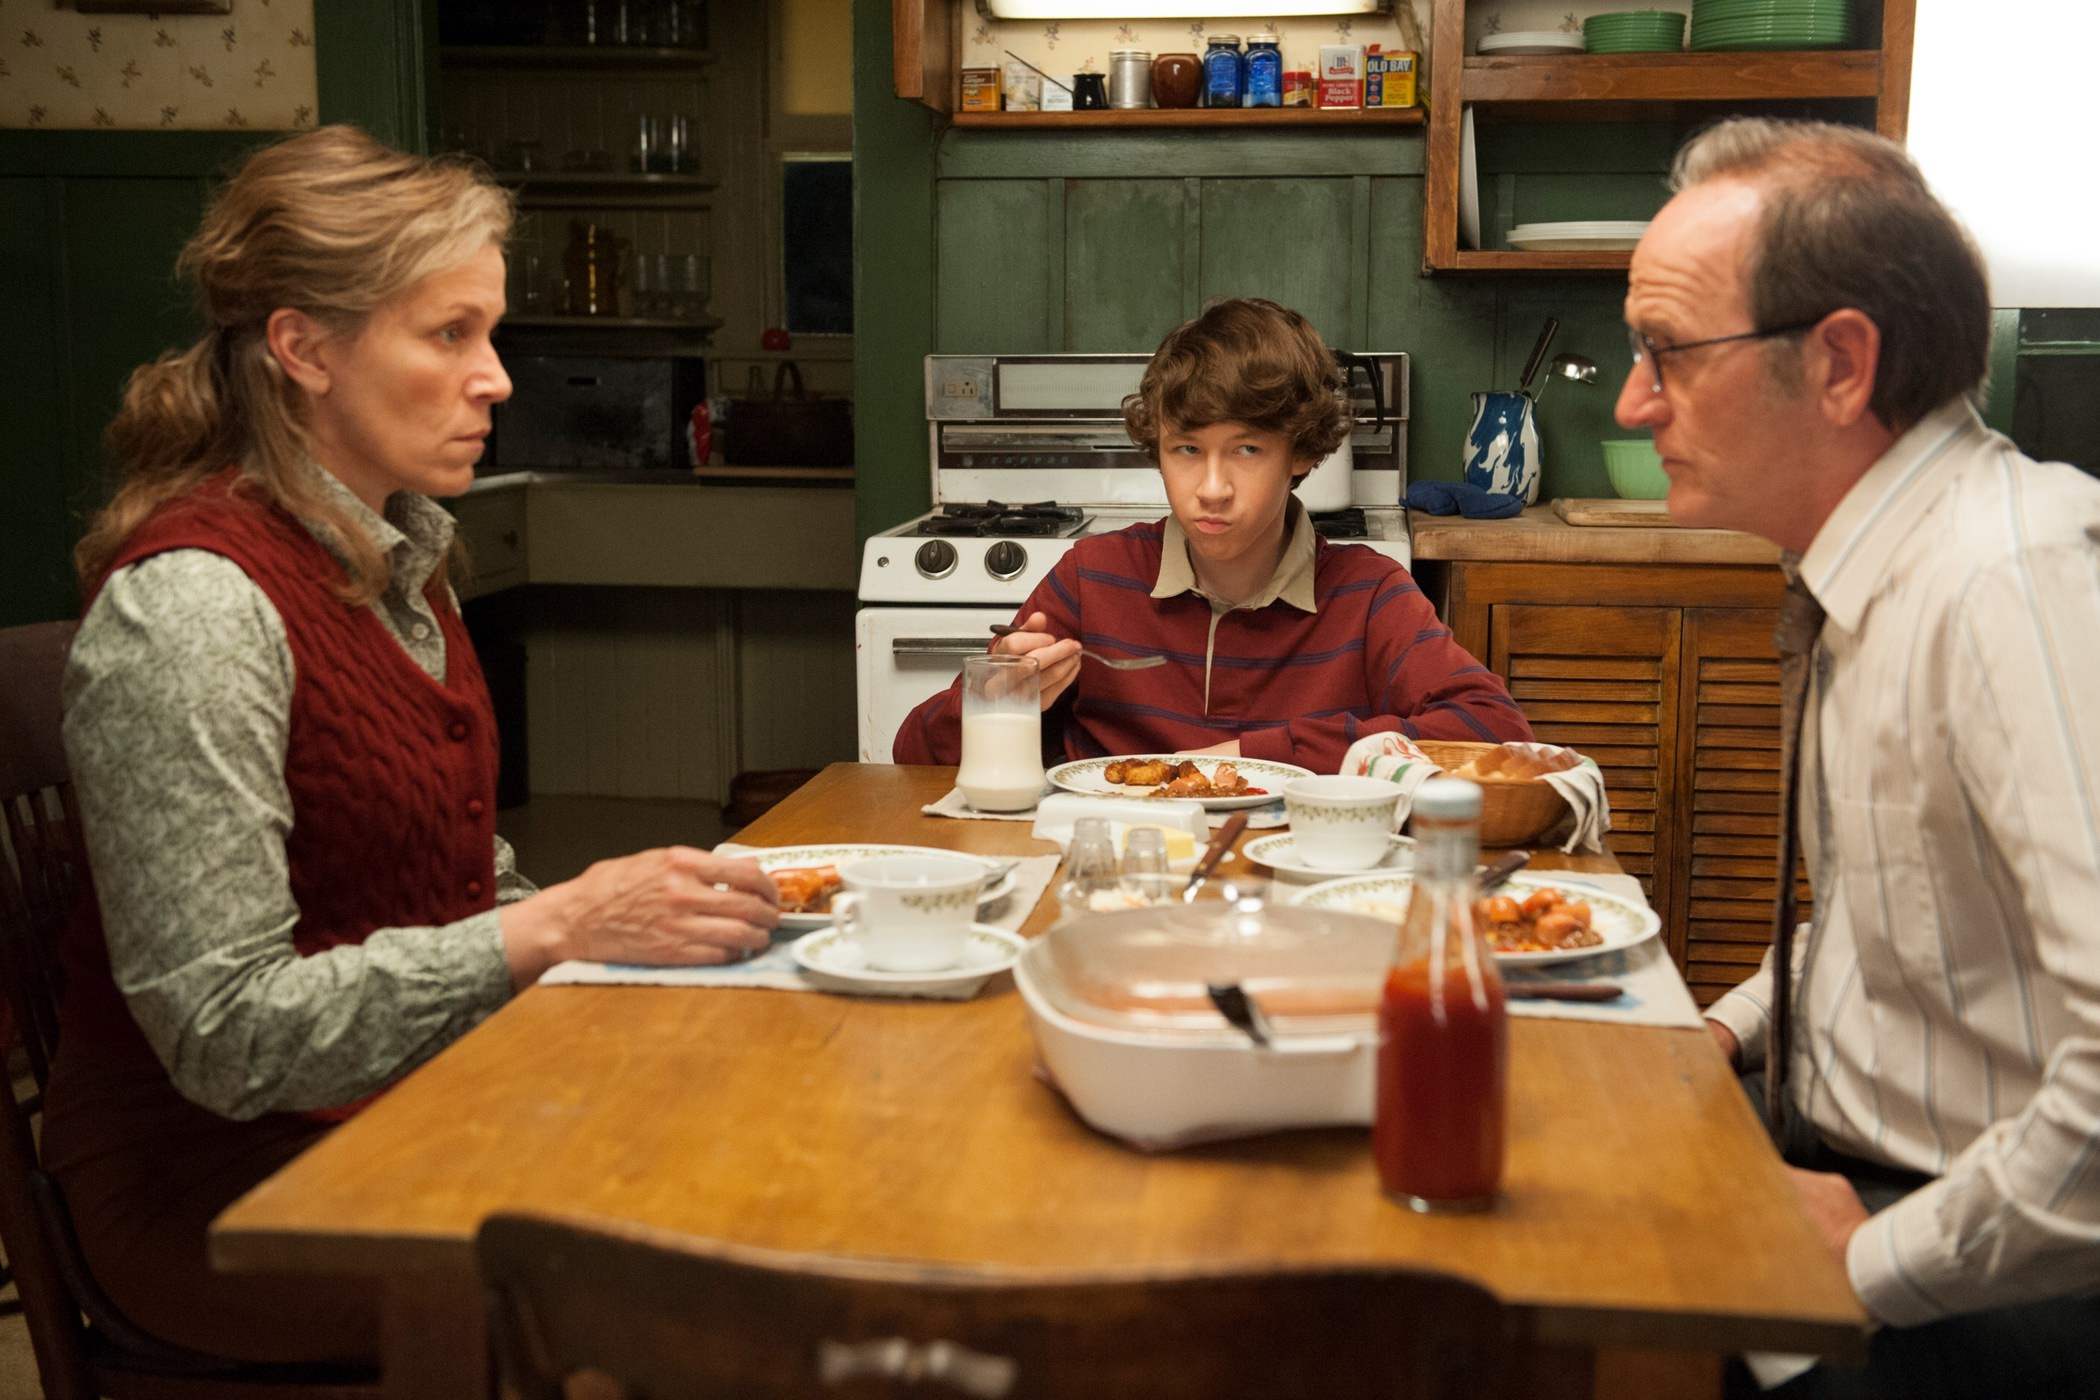 Olive kitteridge frances mcdormand richard jenkins